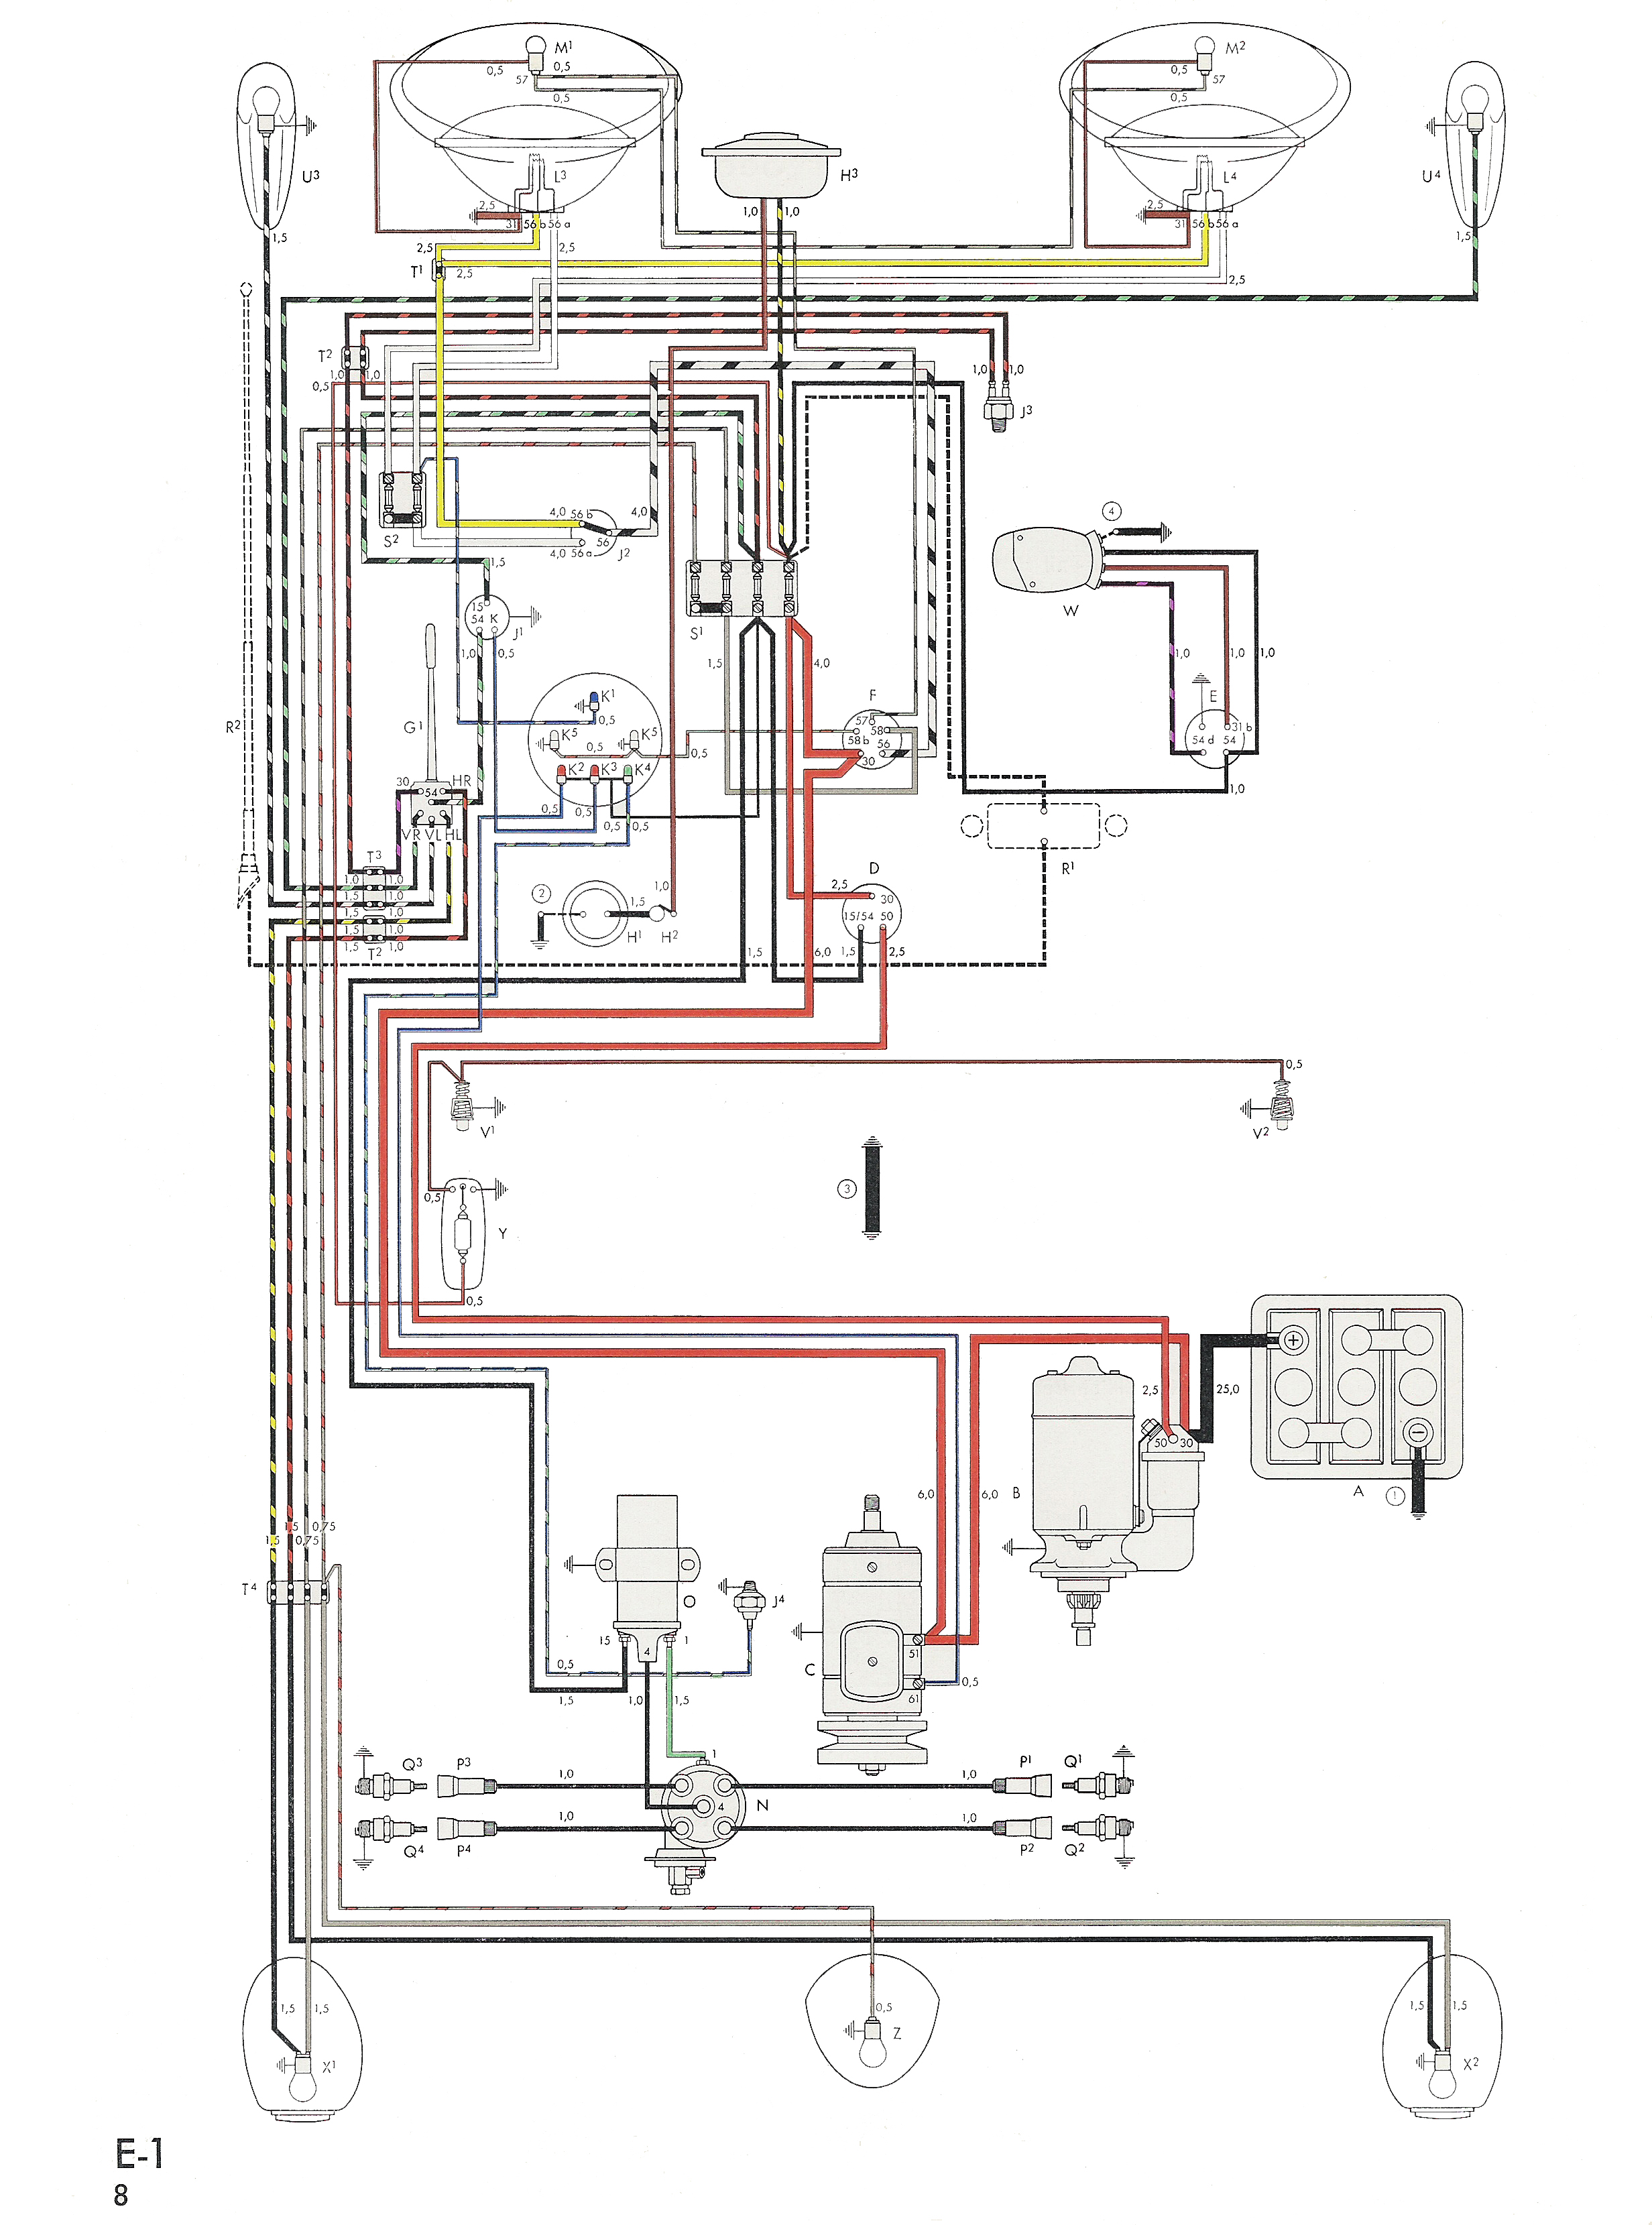 thesamba com type 1 wiring diagrams rh thesamba com 99 Beetle Fuse Box Diagram  VW Fuse Diagram 2002